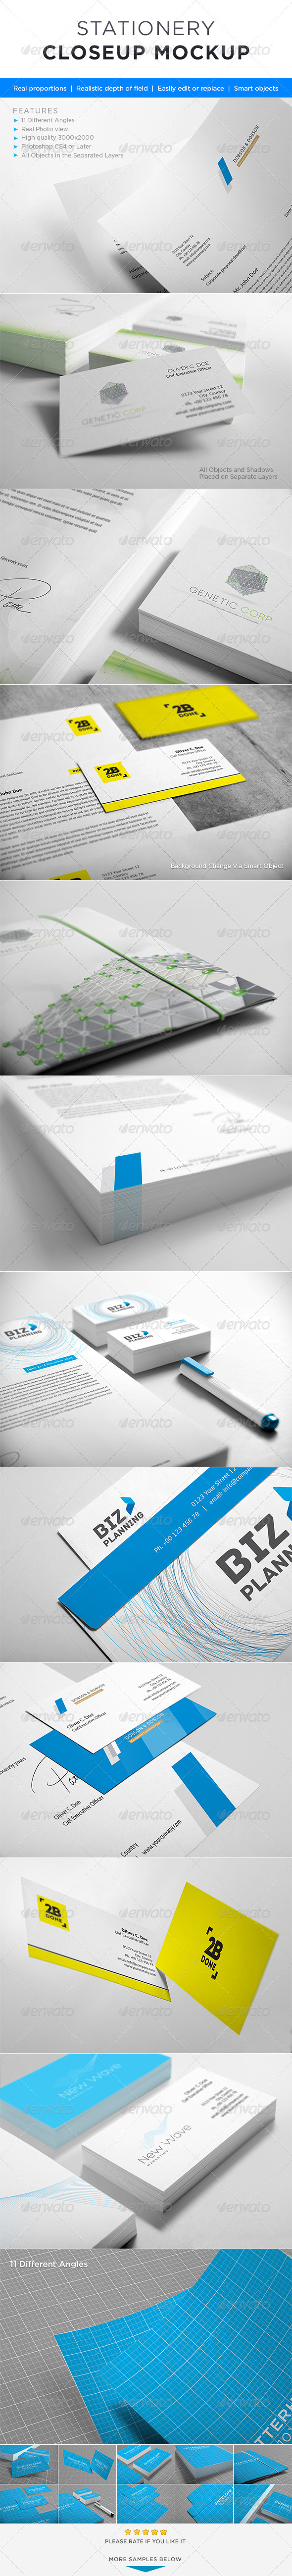 GraphicRiver Photorealistic Stationery Closeup Mock-up 4255180